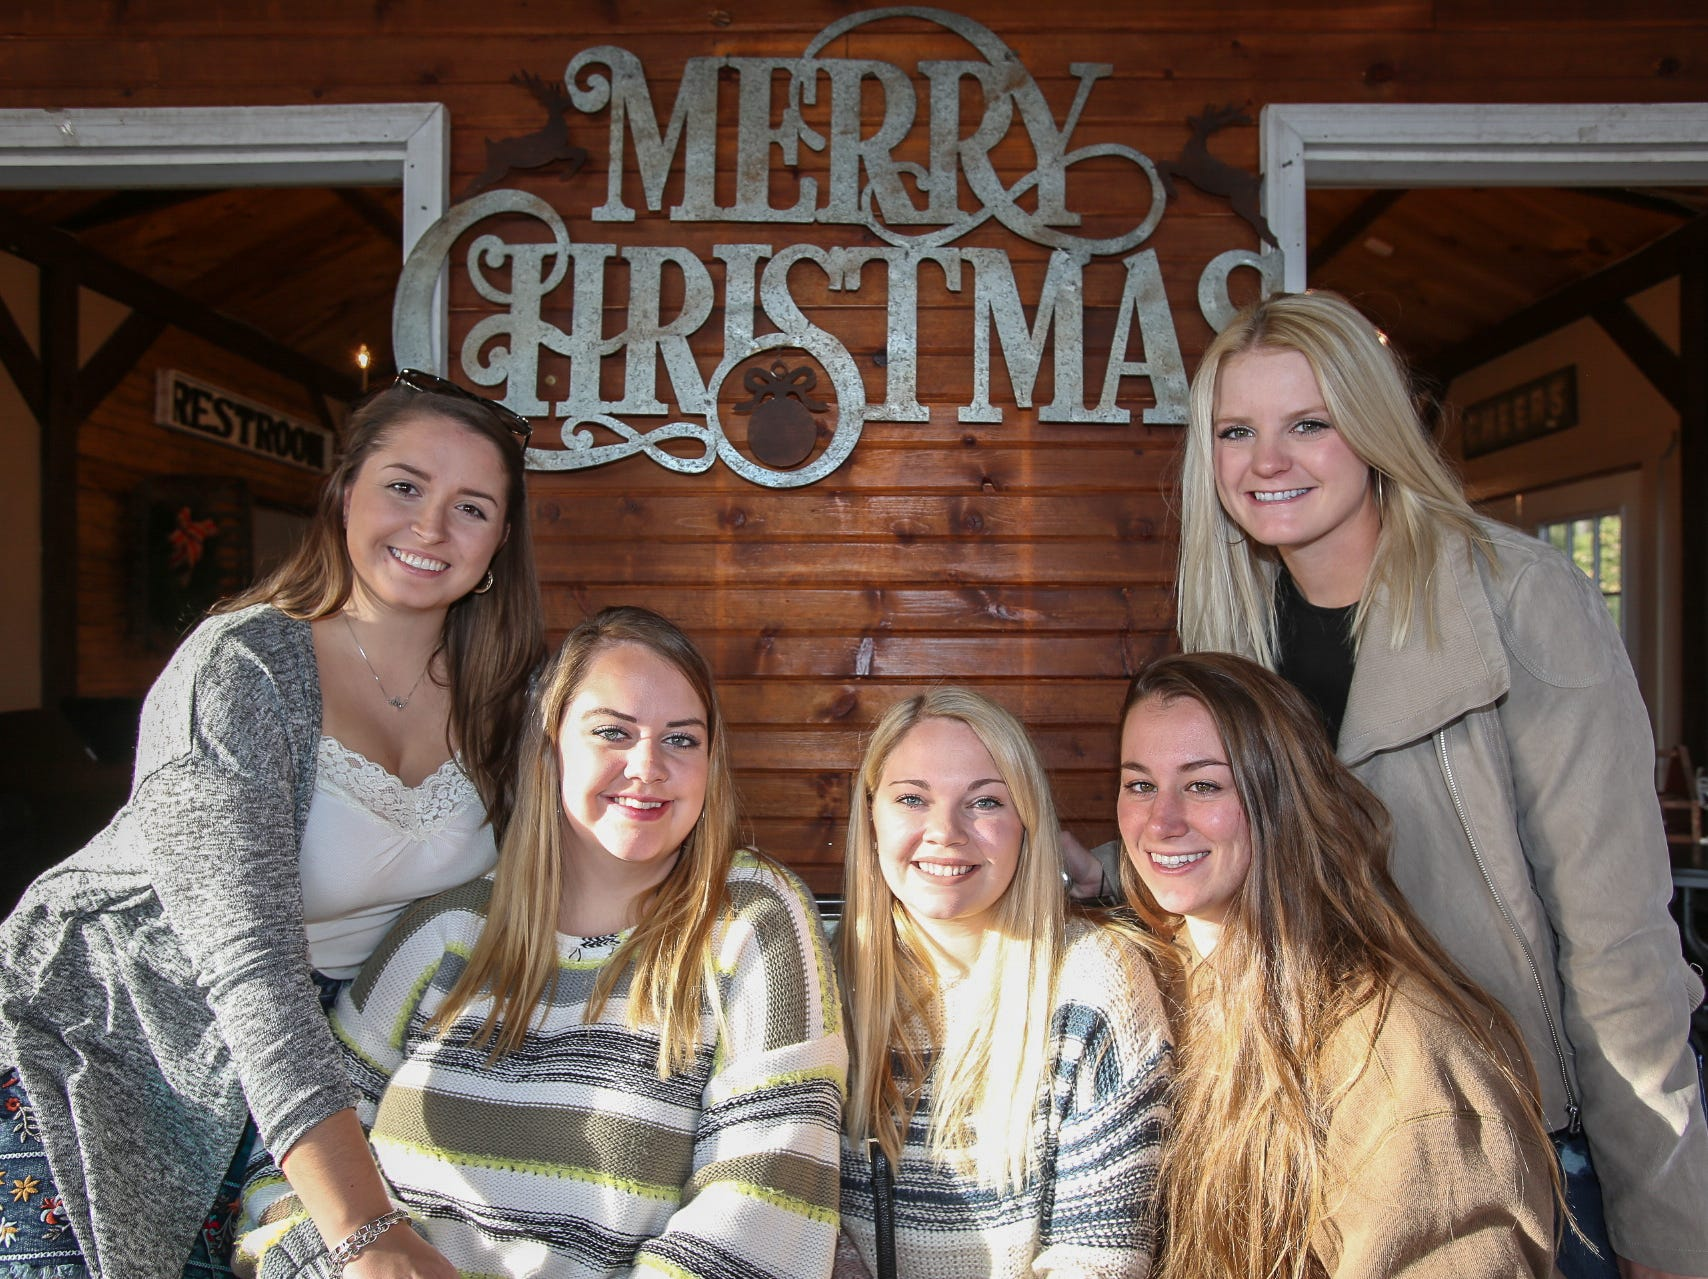 Julianna Rogers, Krista Burris, Cailen Roberts, Haley Stedman, and Micah McCarty